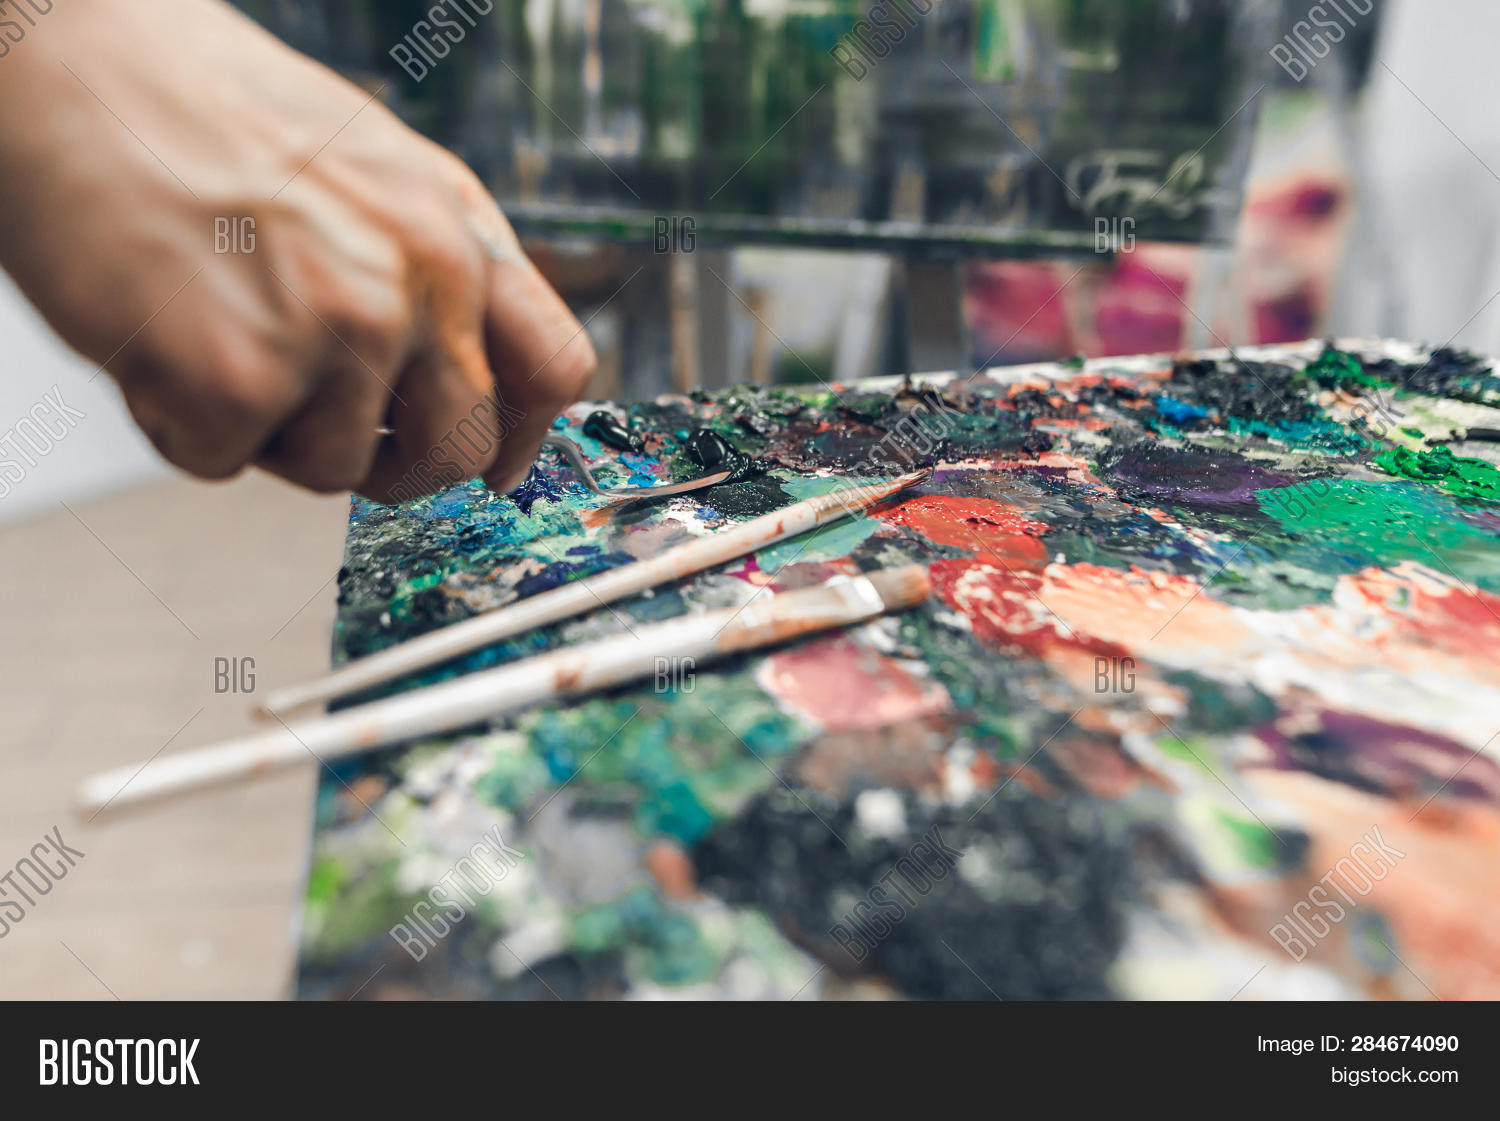 abstraction,arm,art,artist,artistic,artwork,blend,blobs,brash,canvas,close-up,closeup,color,colorful,combine,courageous,crafts,creation,creative,creativity,design,detail,draw,drawing,easel,equipment,female,fingers,hand,hold,human,knife,liquid,male,man,mess,mix,mixing,oil,paint,paintbrush,painter,palette,pallet,panel,stain,study,tools